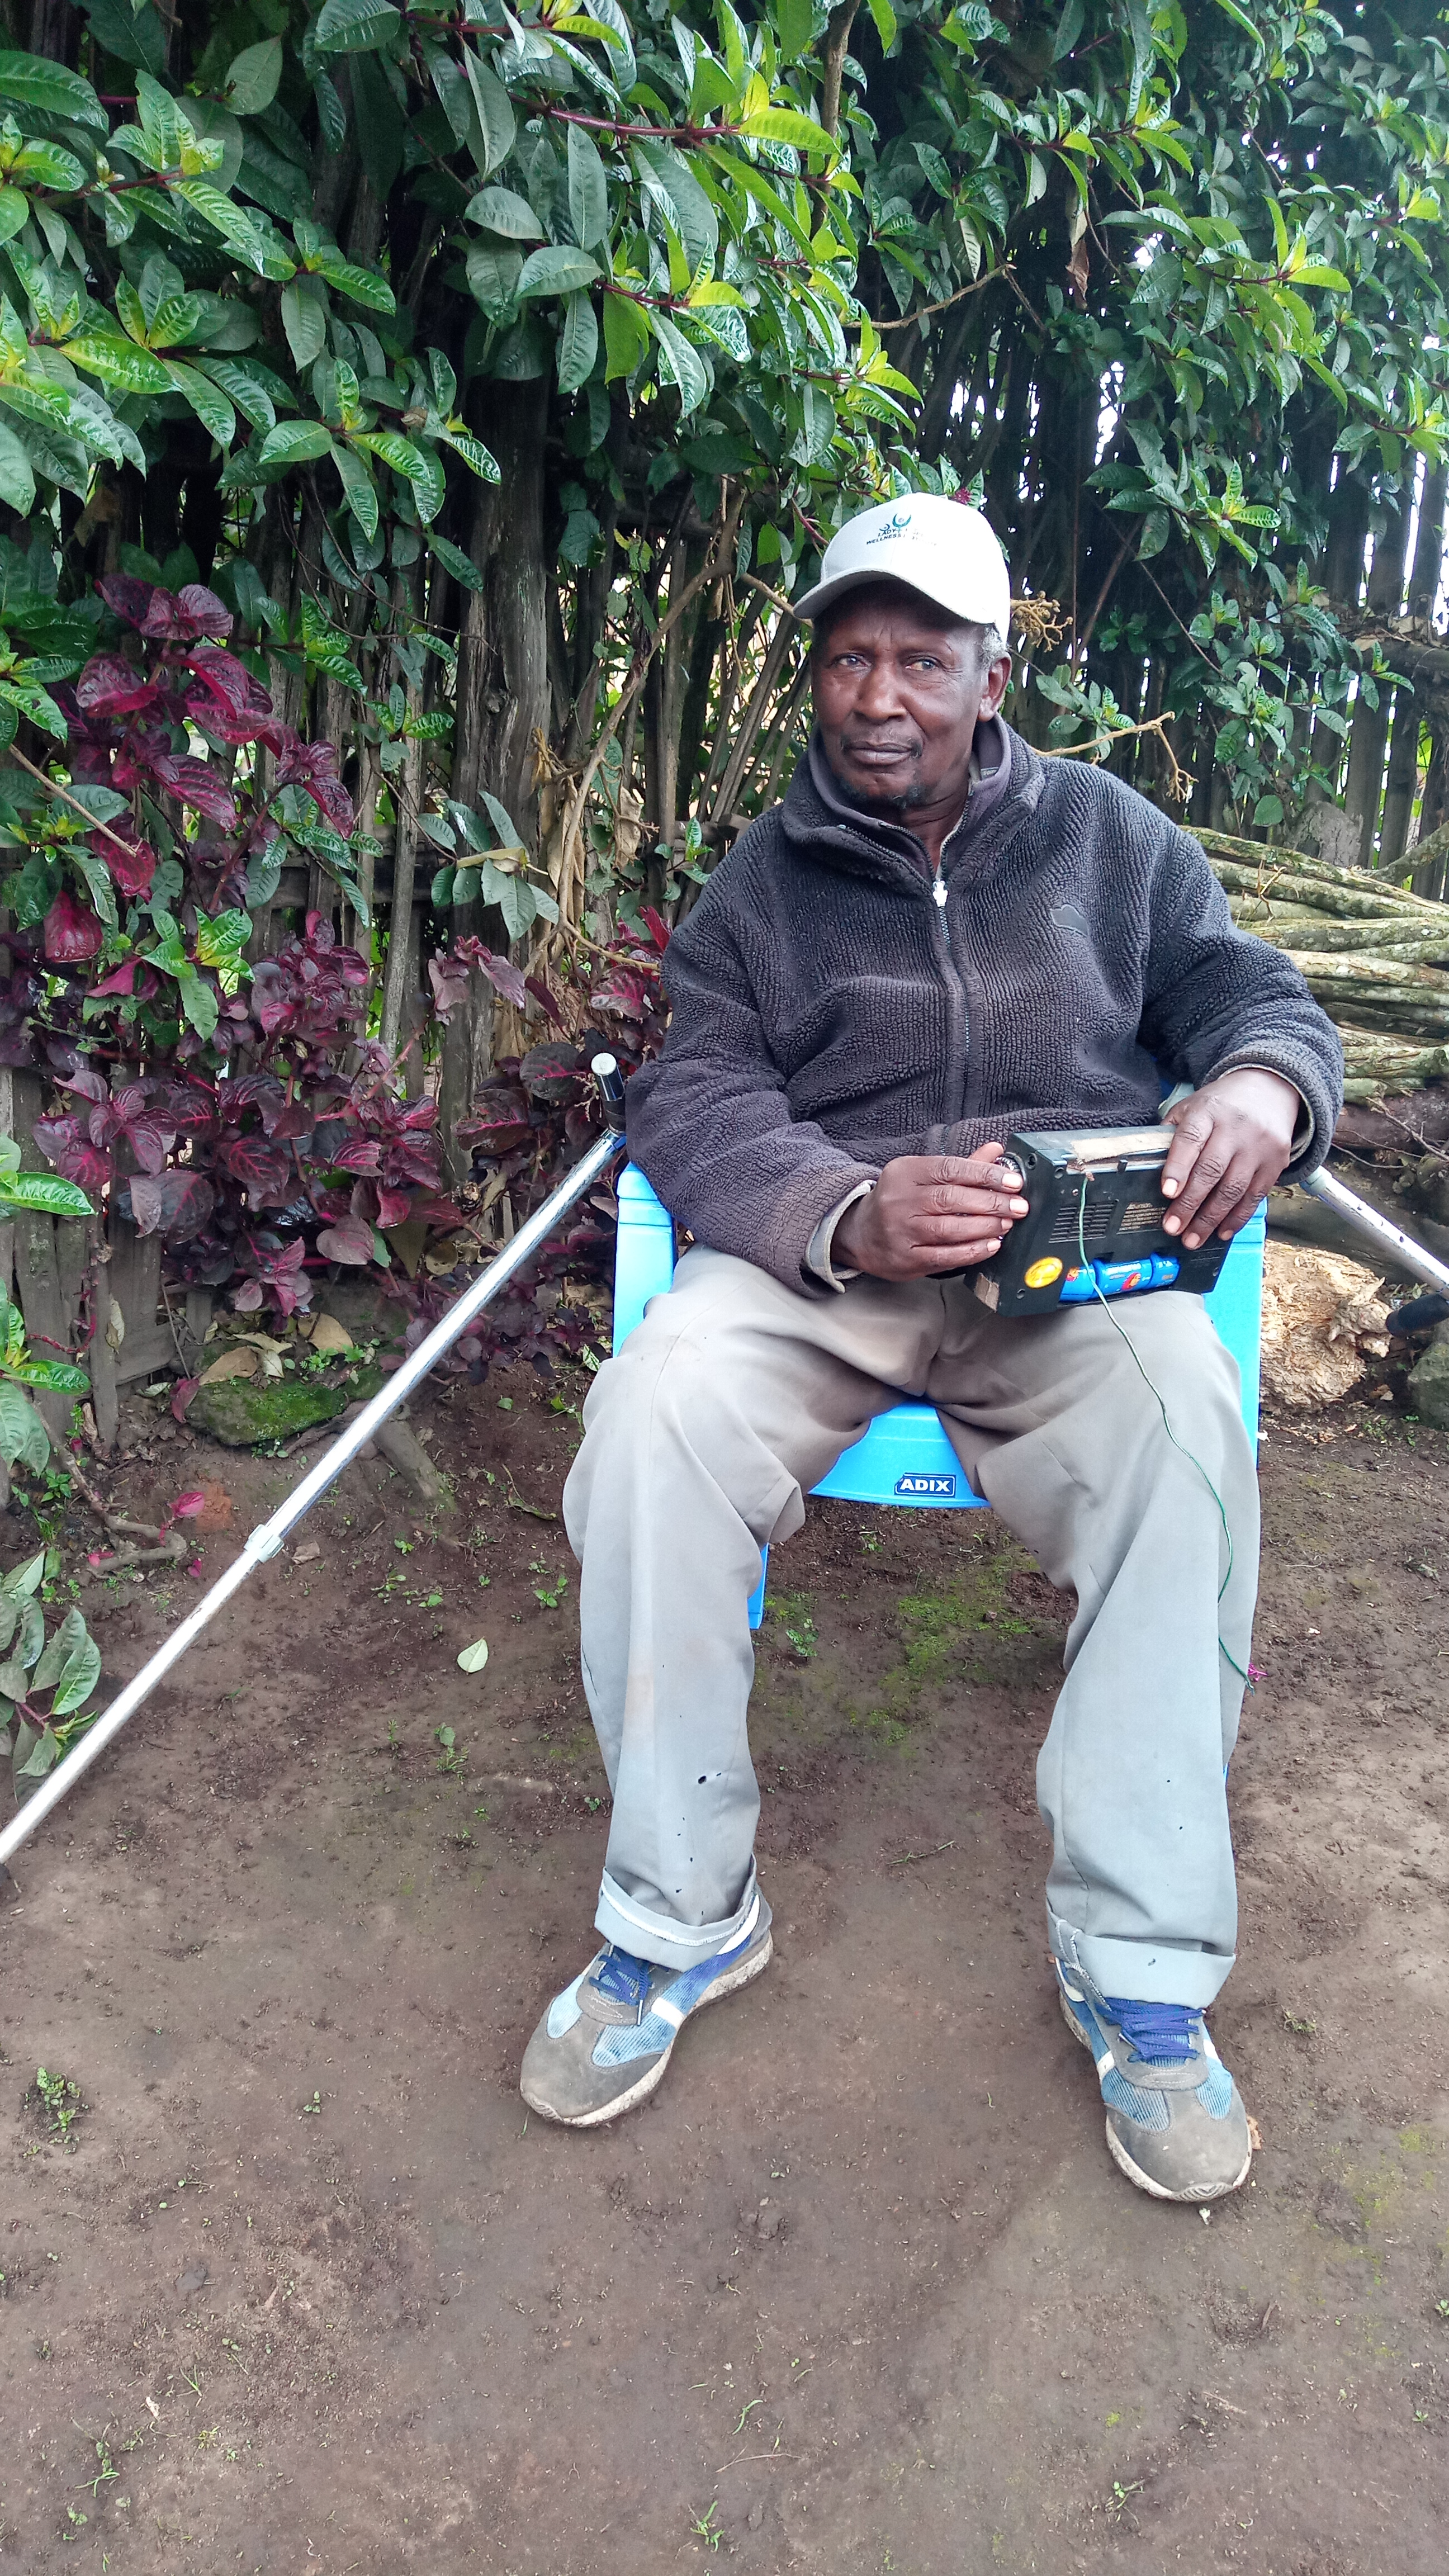 Stanley Chege at his home in Kinangop, Nyandarua County last week. He has recovered from cancer and now uses crutches to walk